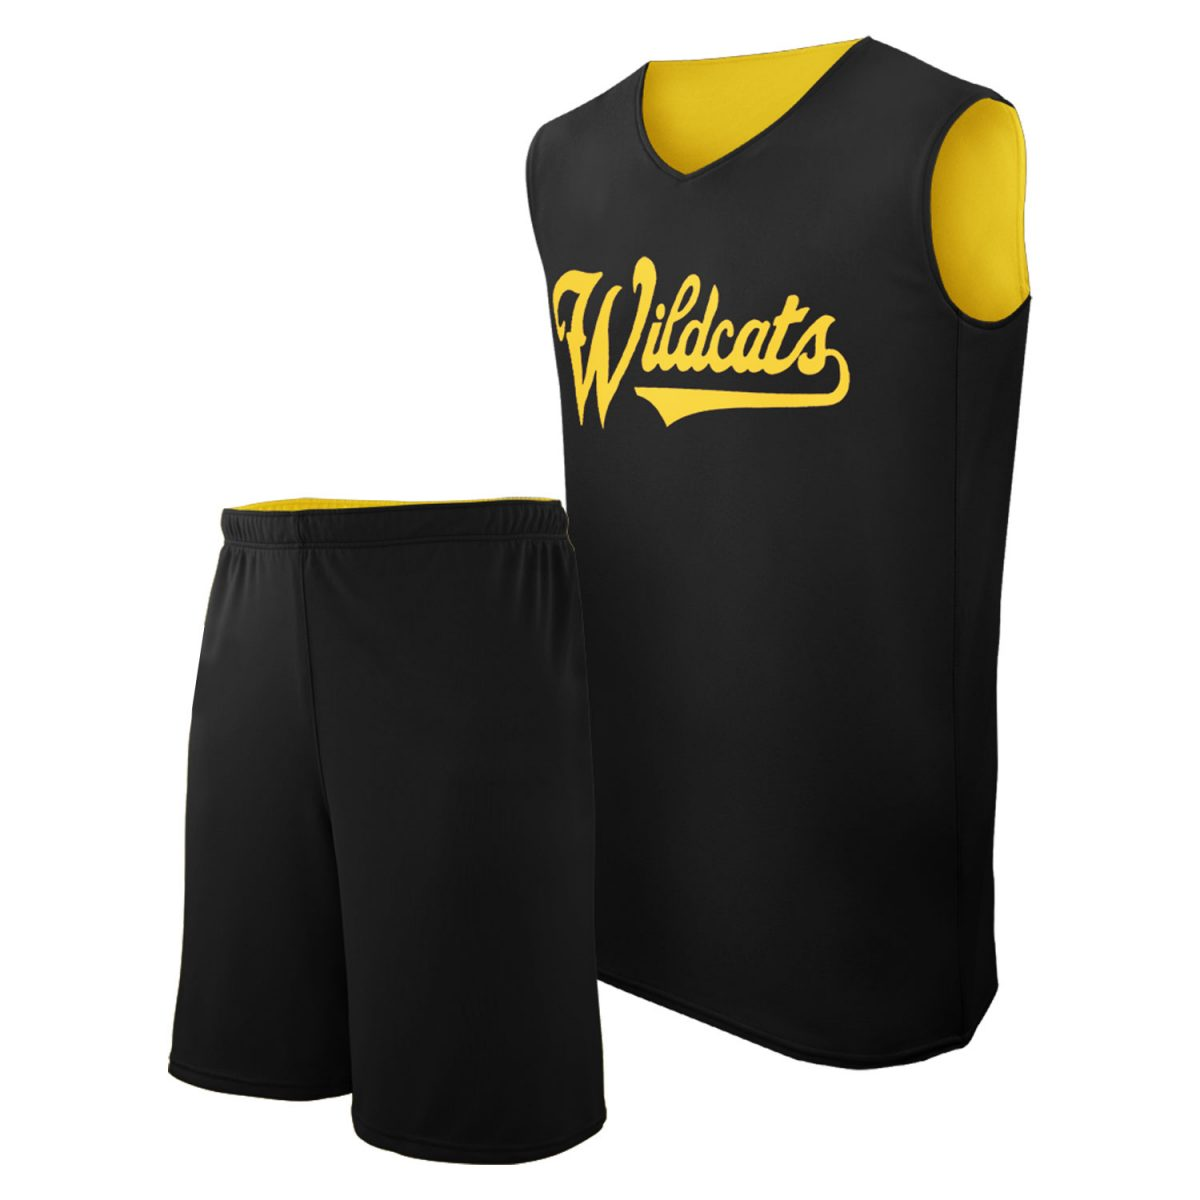 Boys Basketball Uniforms Manufacturers in Croatia